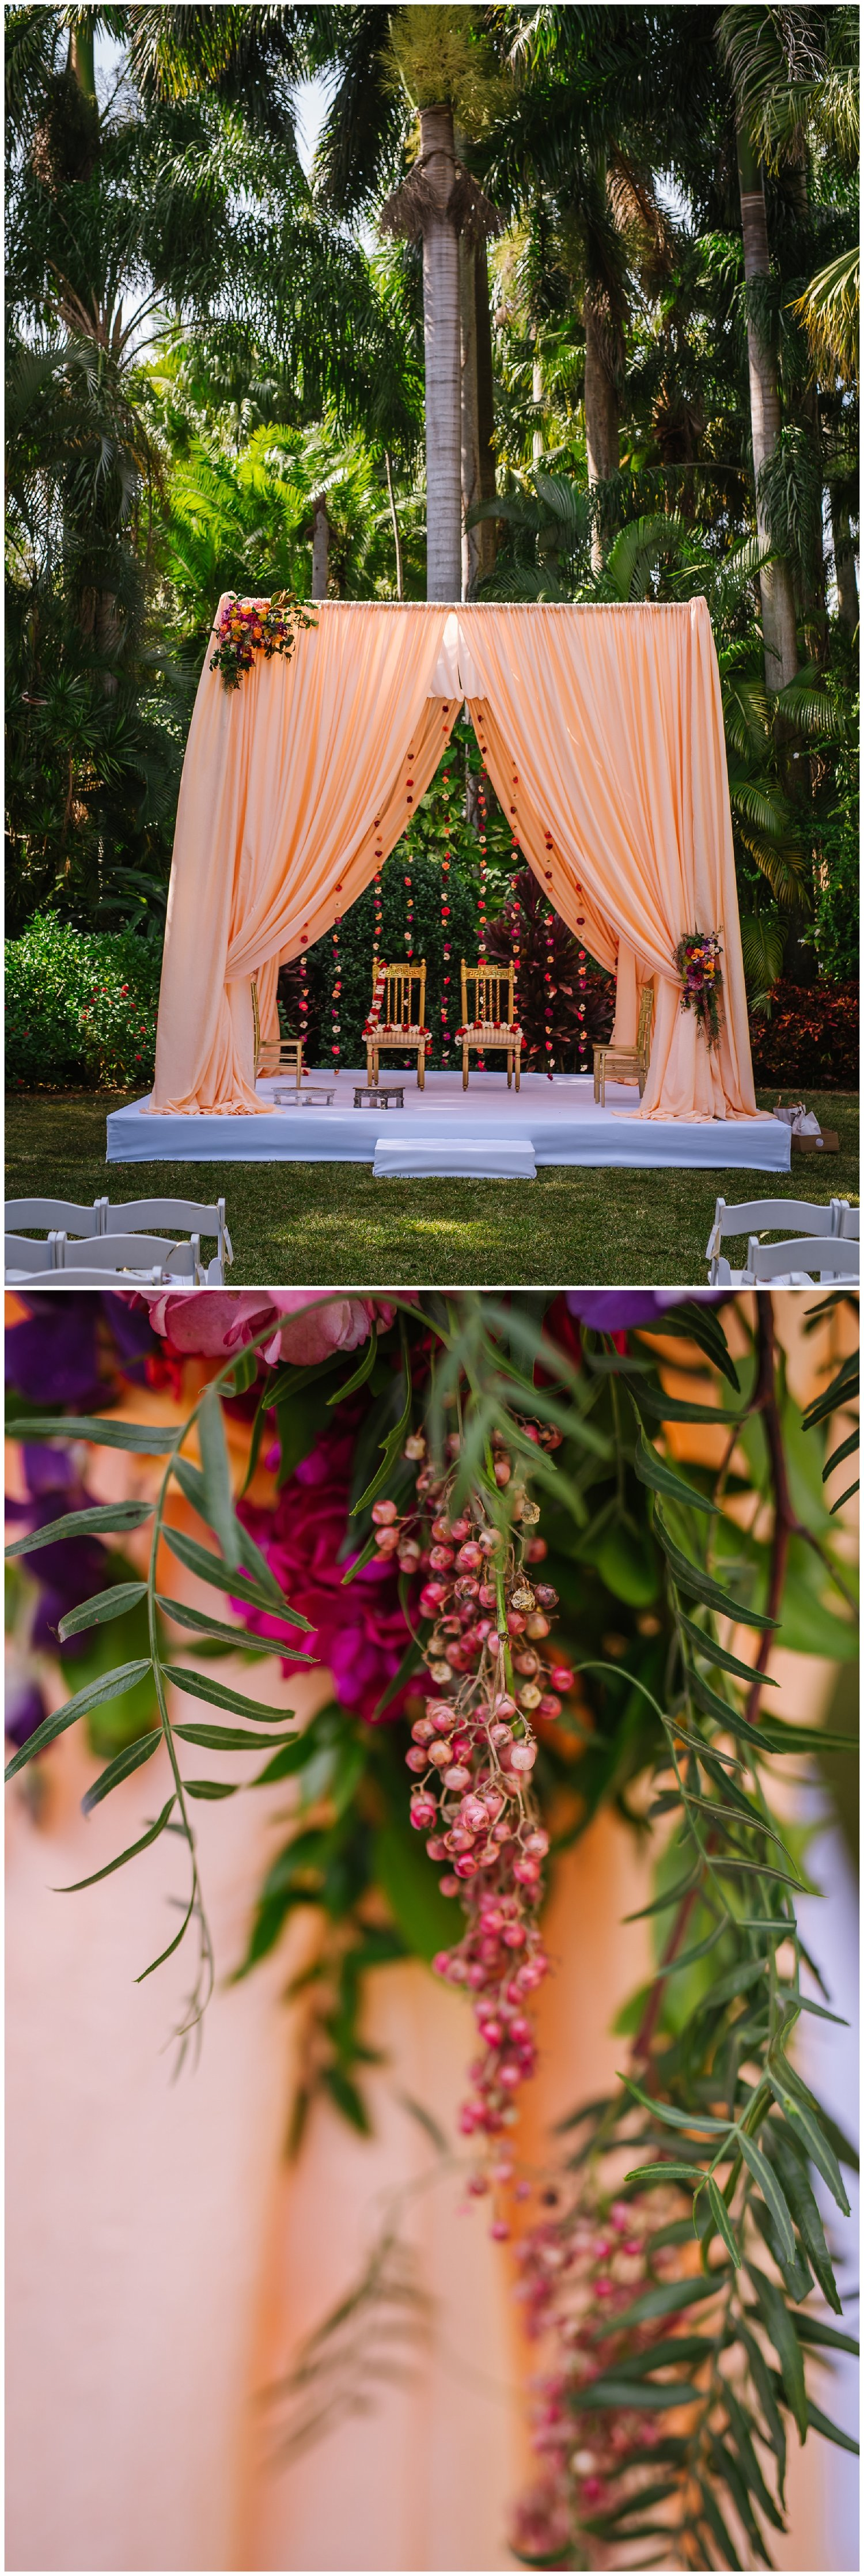 Amanda & Anand | Pinterest | Sunken garden, Hindu weddings and Weddings